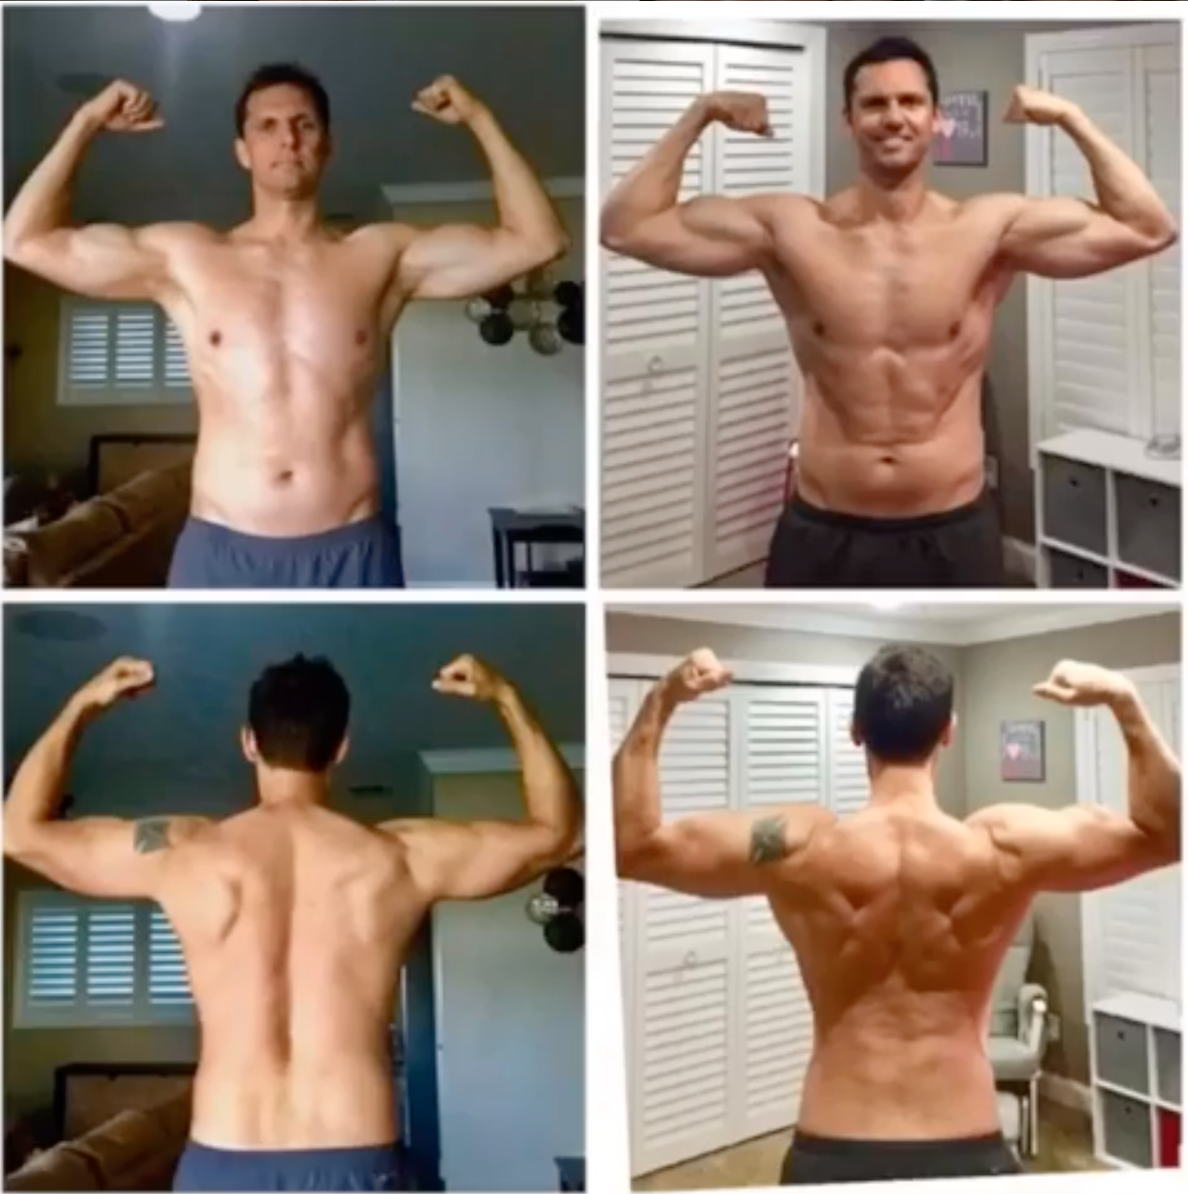 """""""This has been the best health and fitness investment I have done in the last 20 years! Increased lean muscle, more energy, better sleep, and focus.""""  -Eric Springer"""